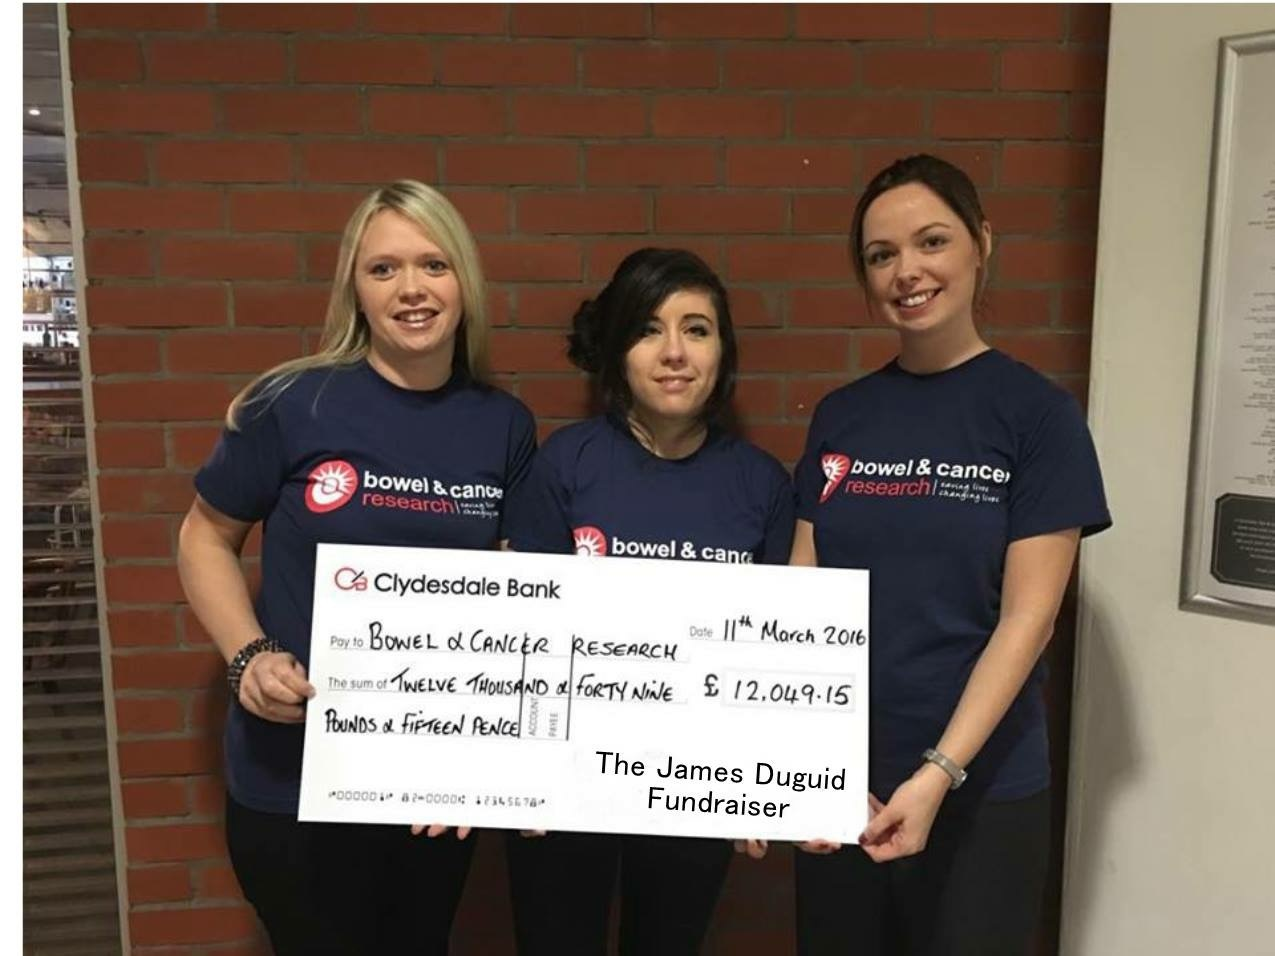 Lynne Tracy, Amy Noss from Bowel & Cancer Research, Michelle Duguid